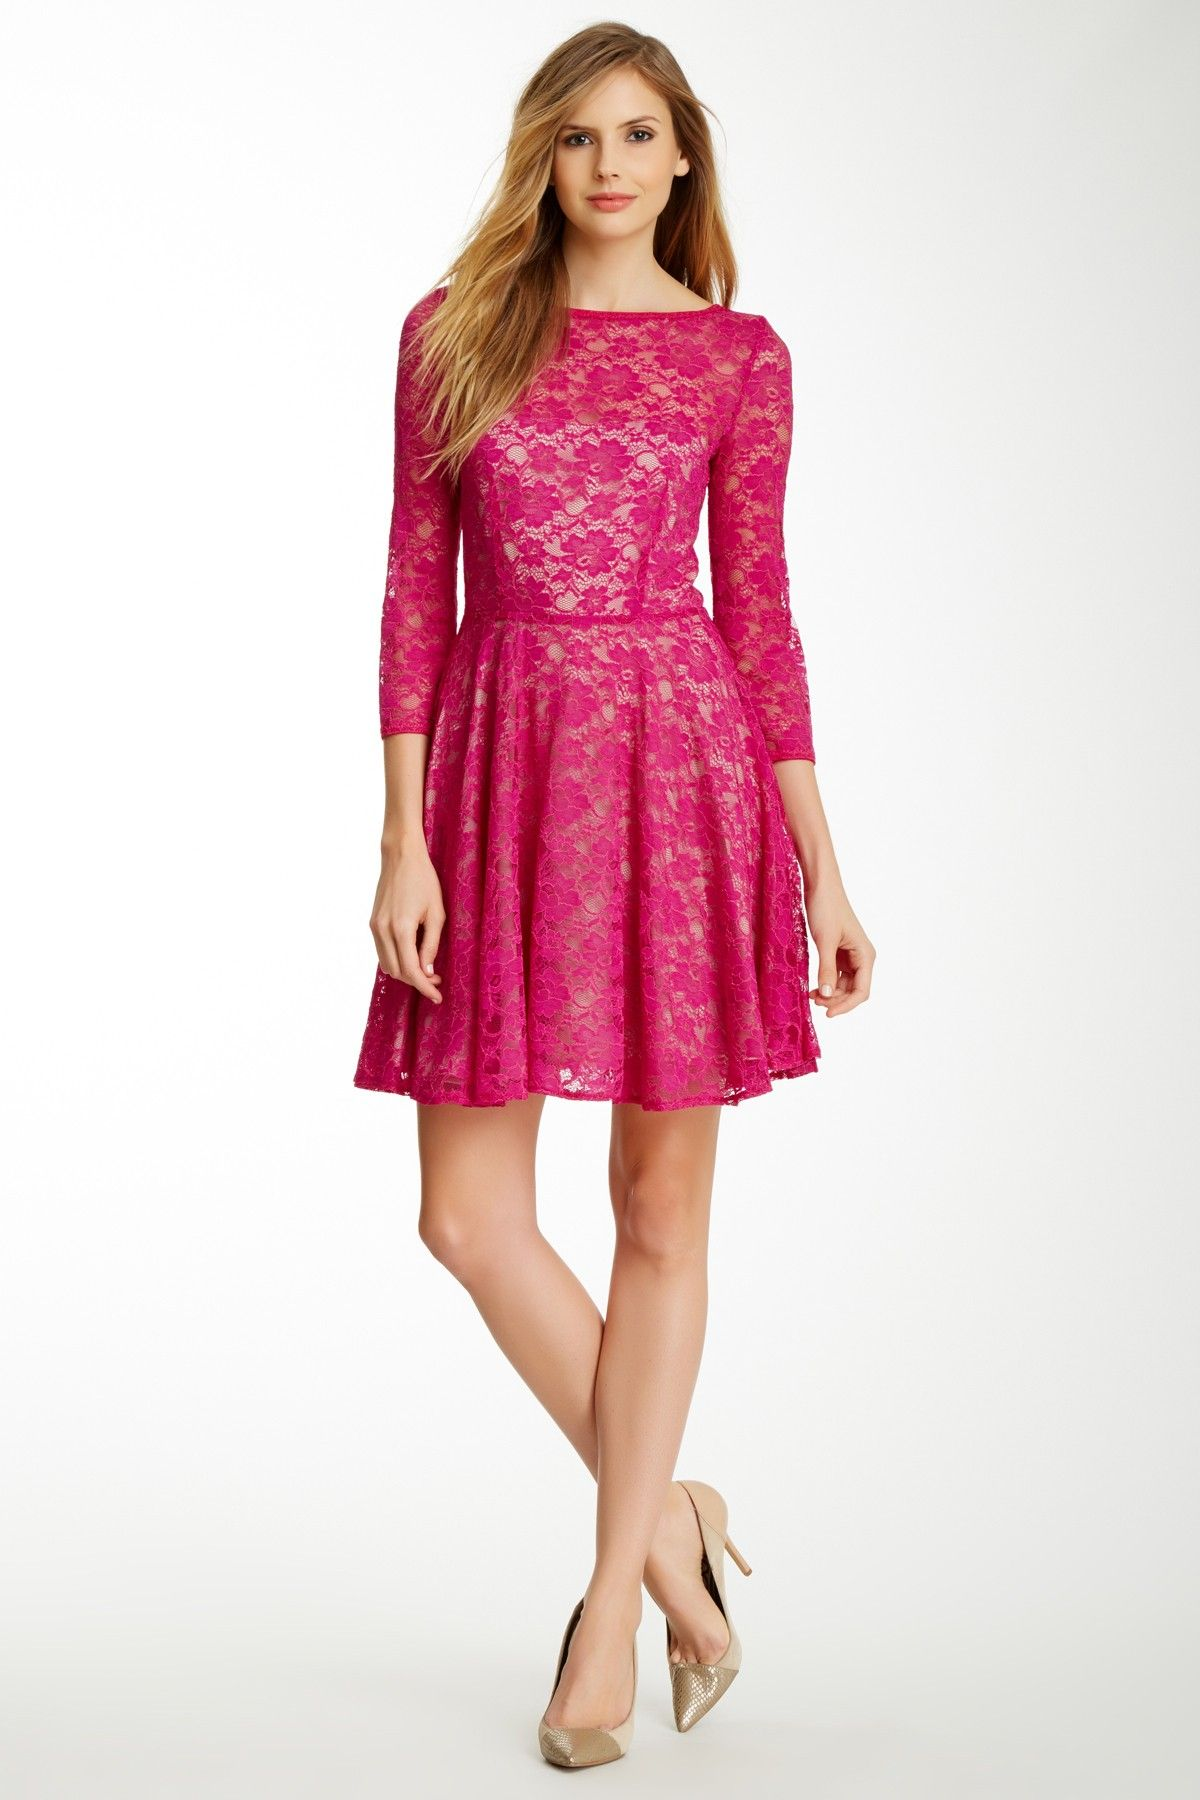 French connection lizzie lace dress nordstrom rack